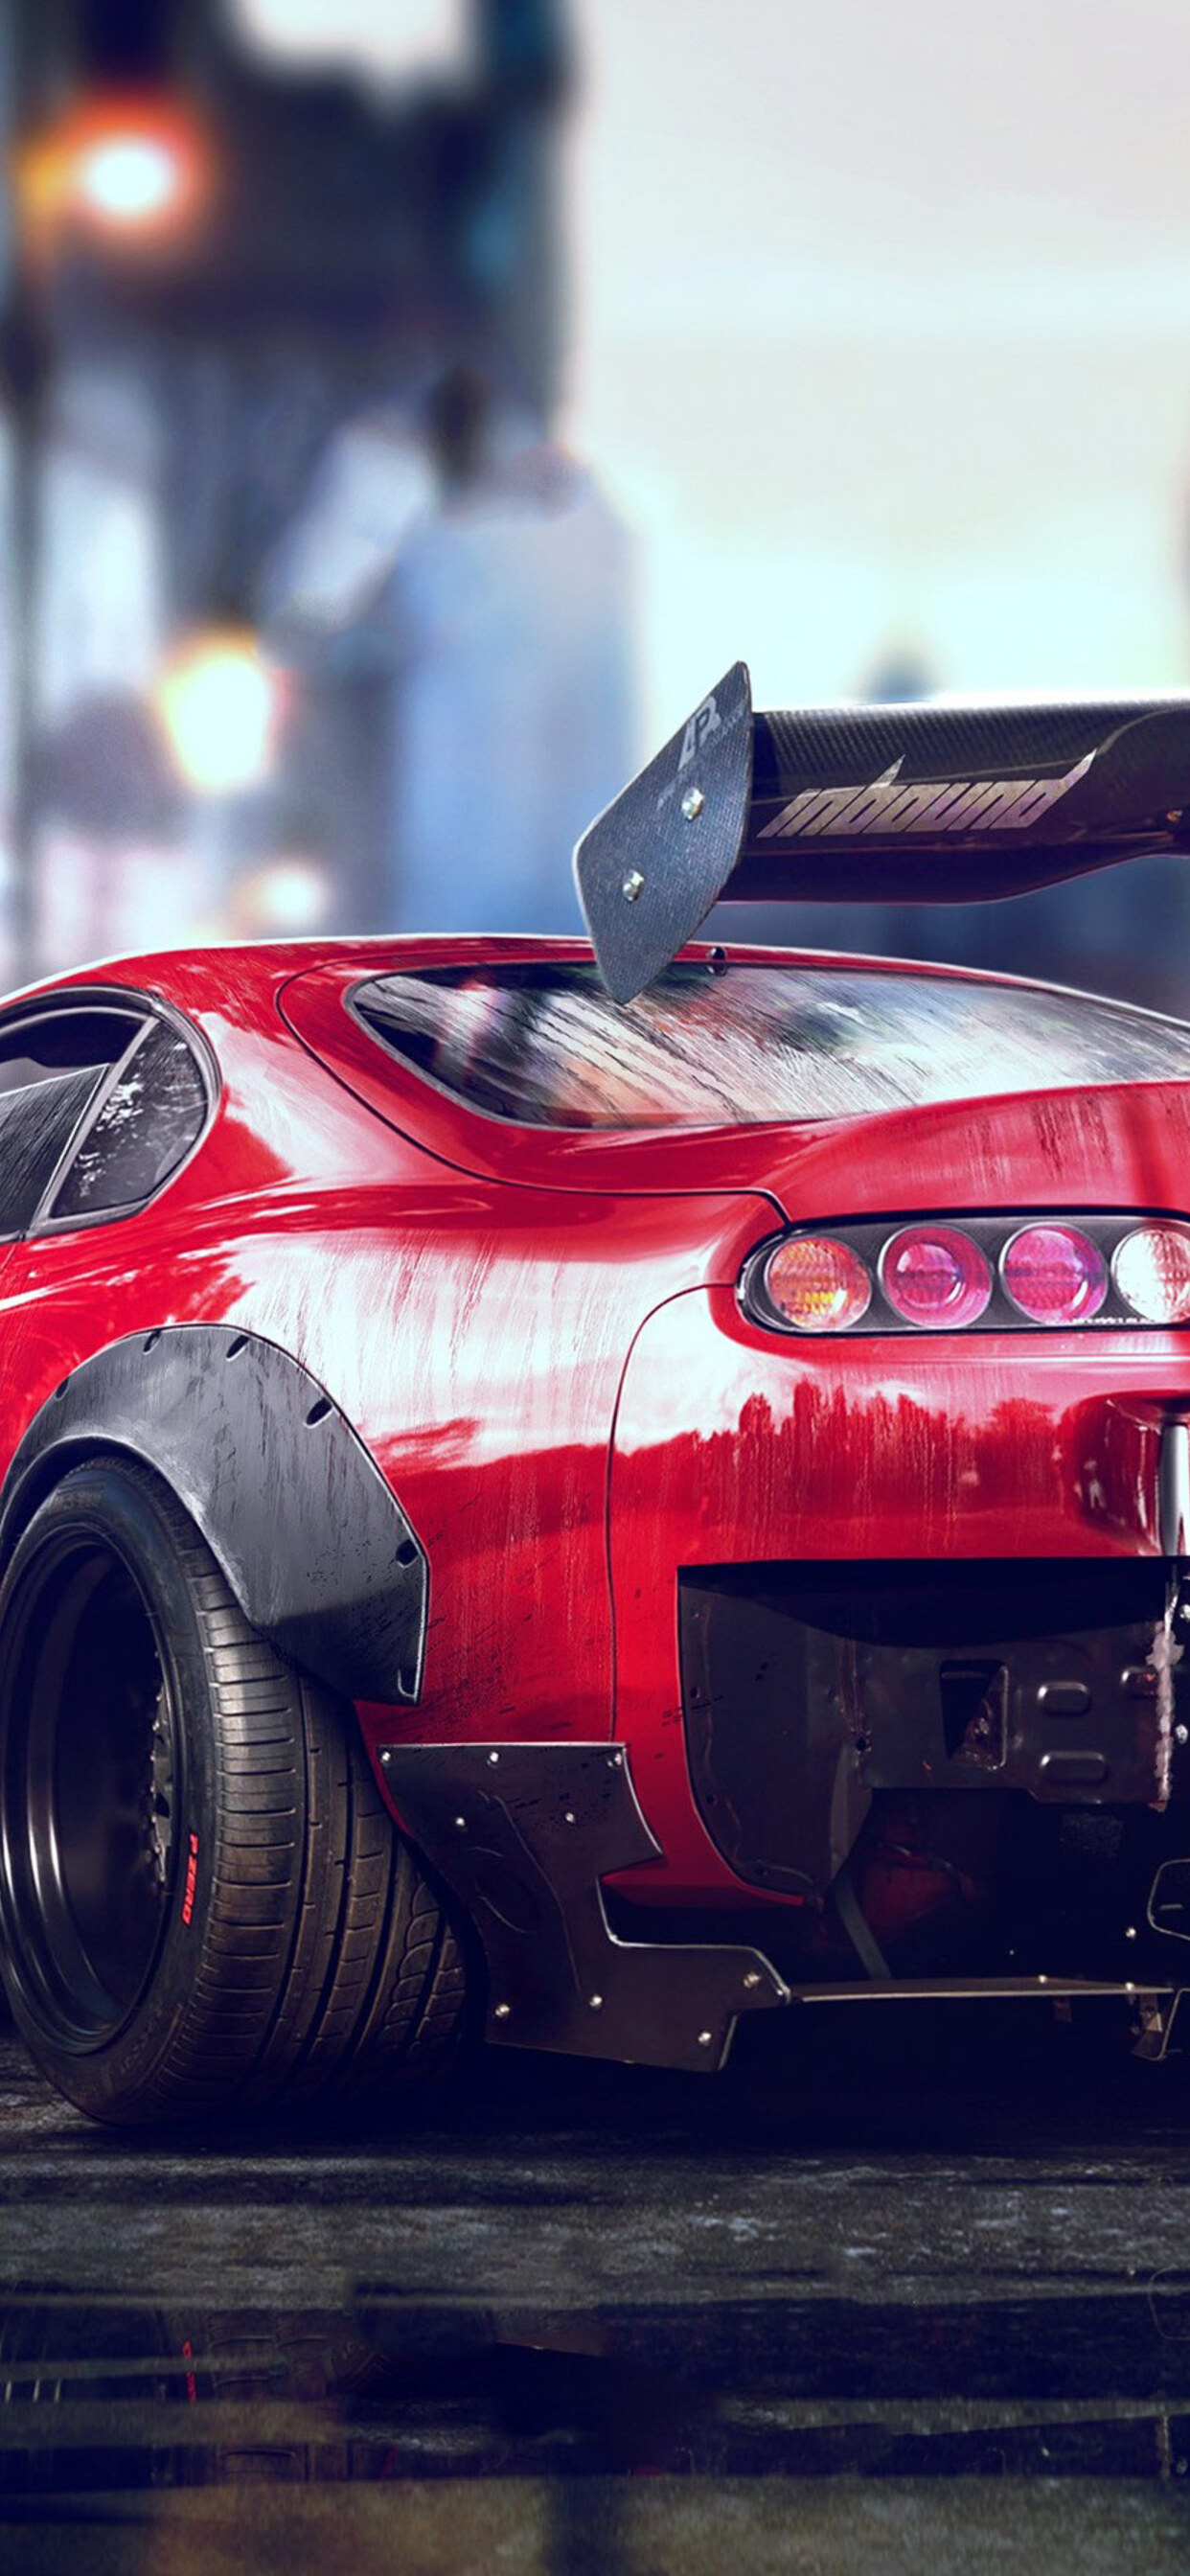 1242x2688 Toyota Supra Iphone Xs Max Hd 4k Wallpapers Images